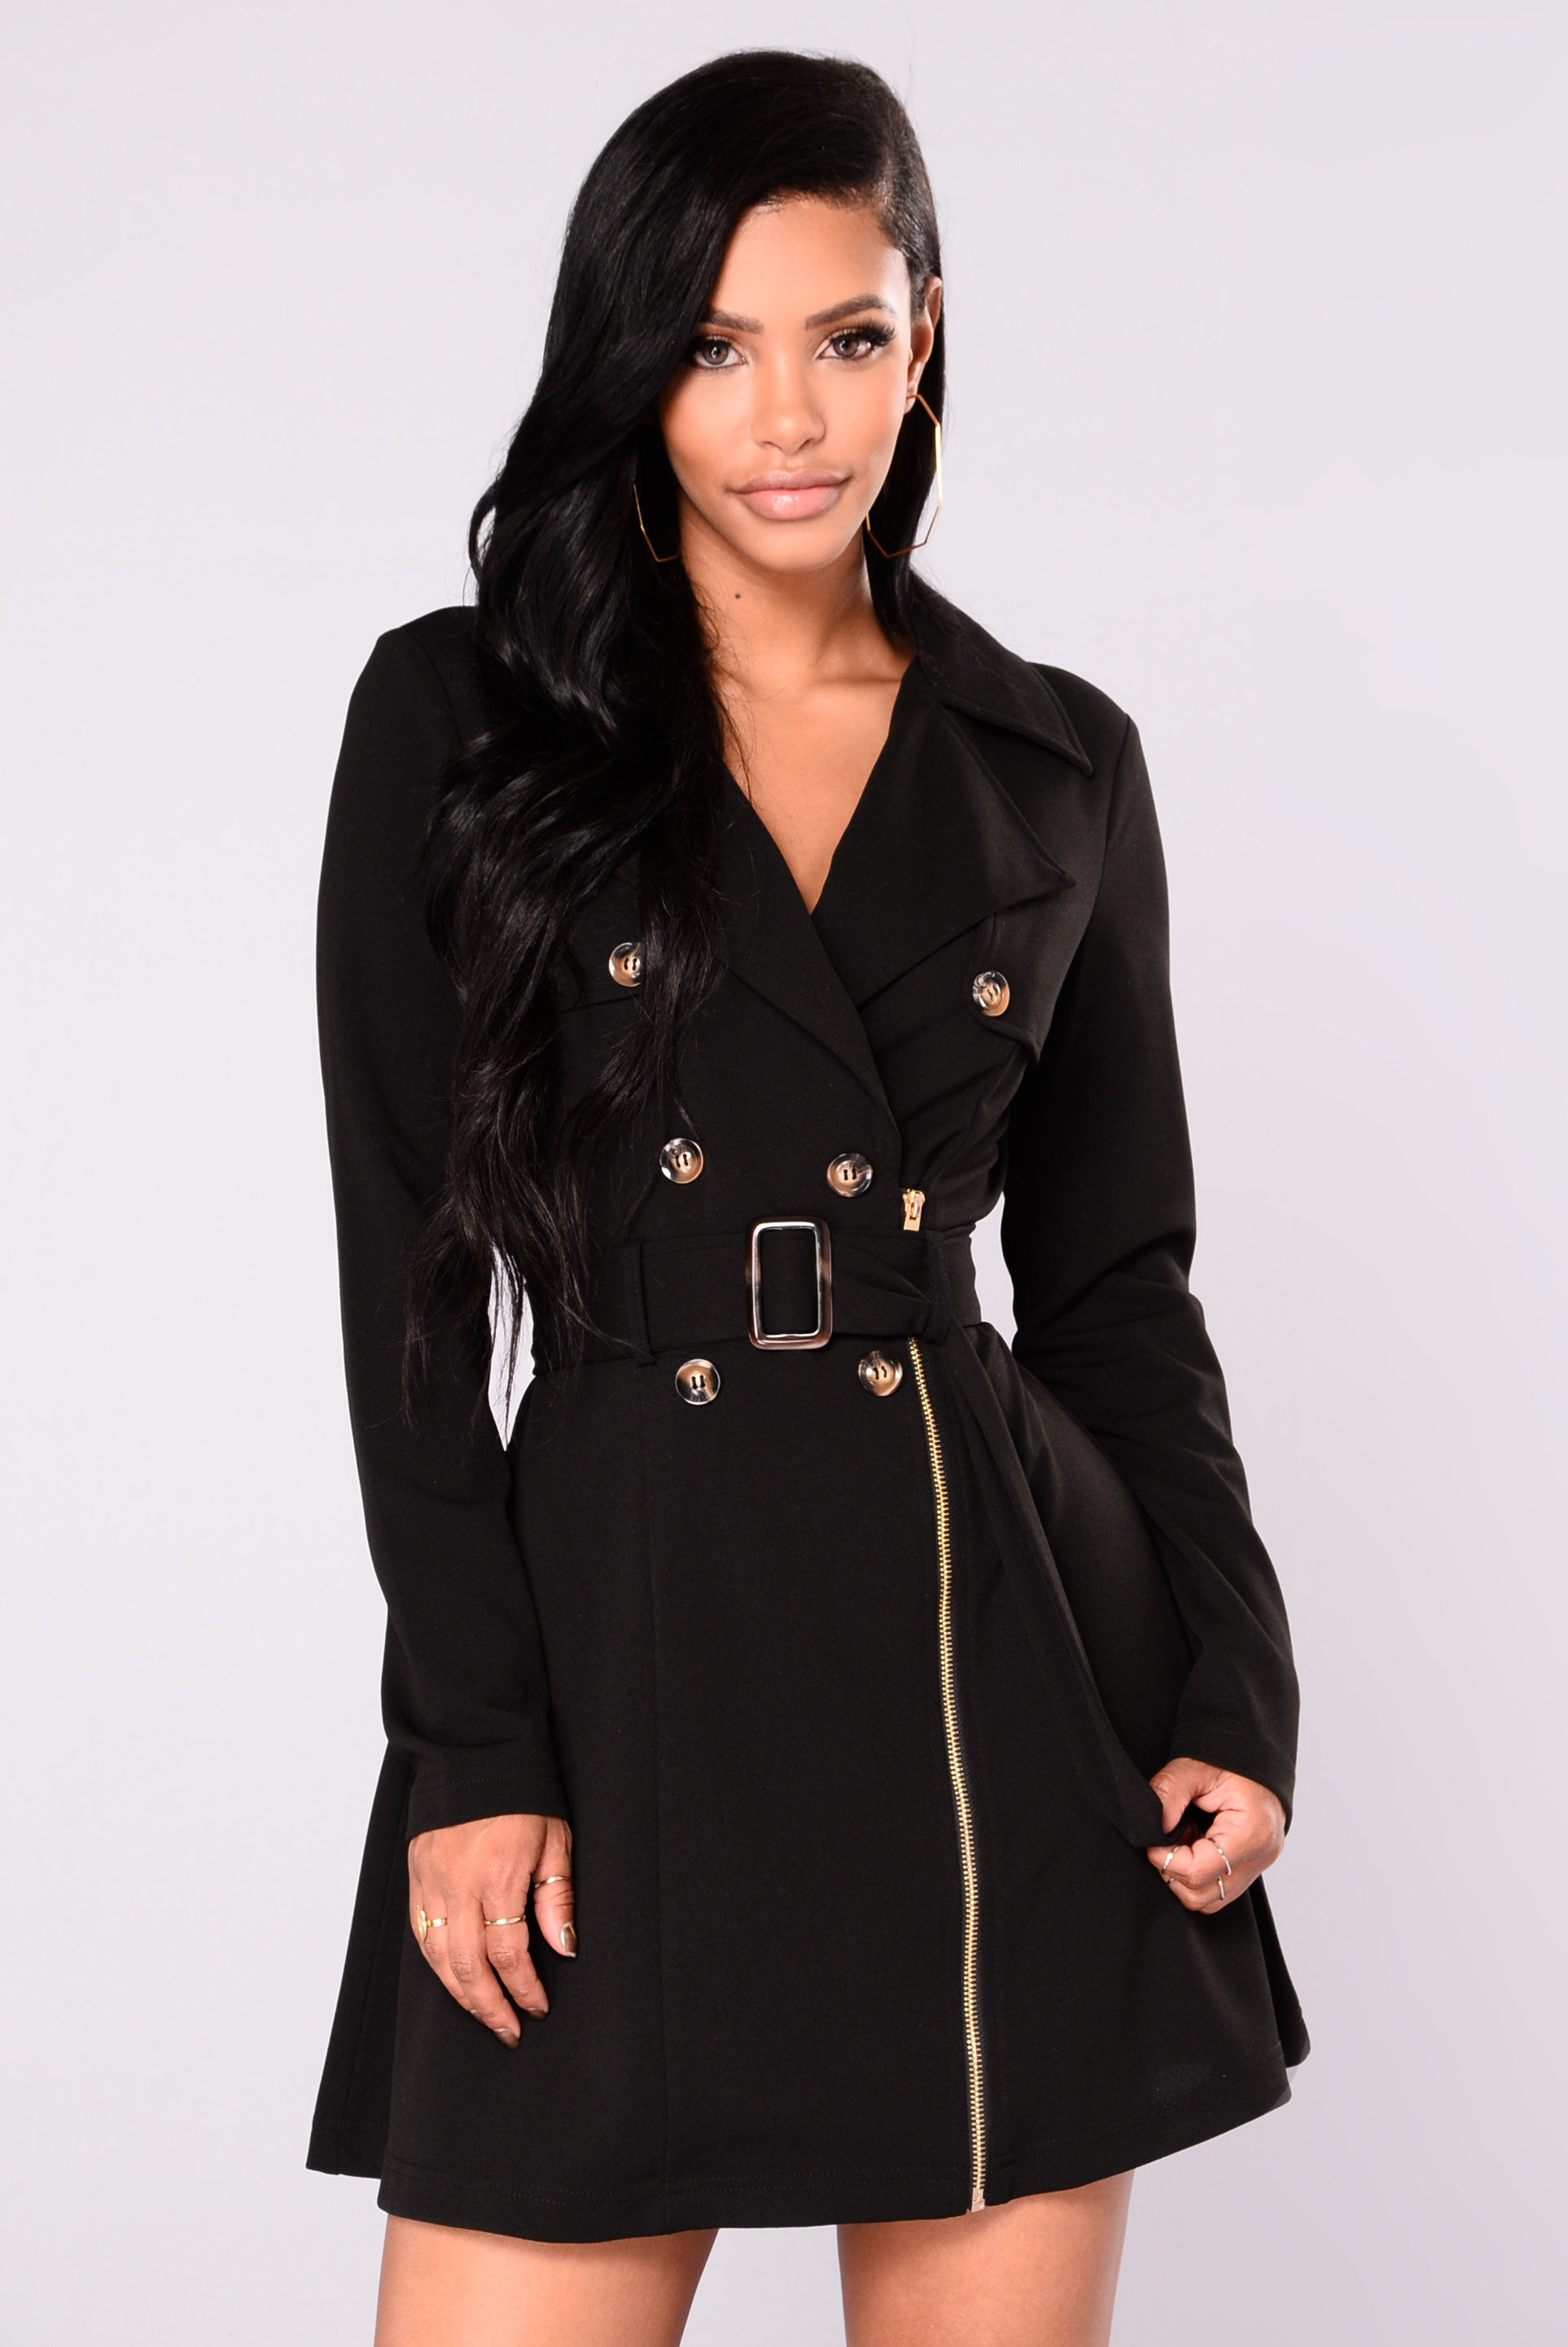 Black trench coat looks